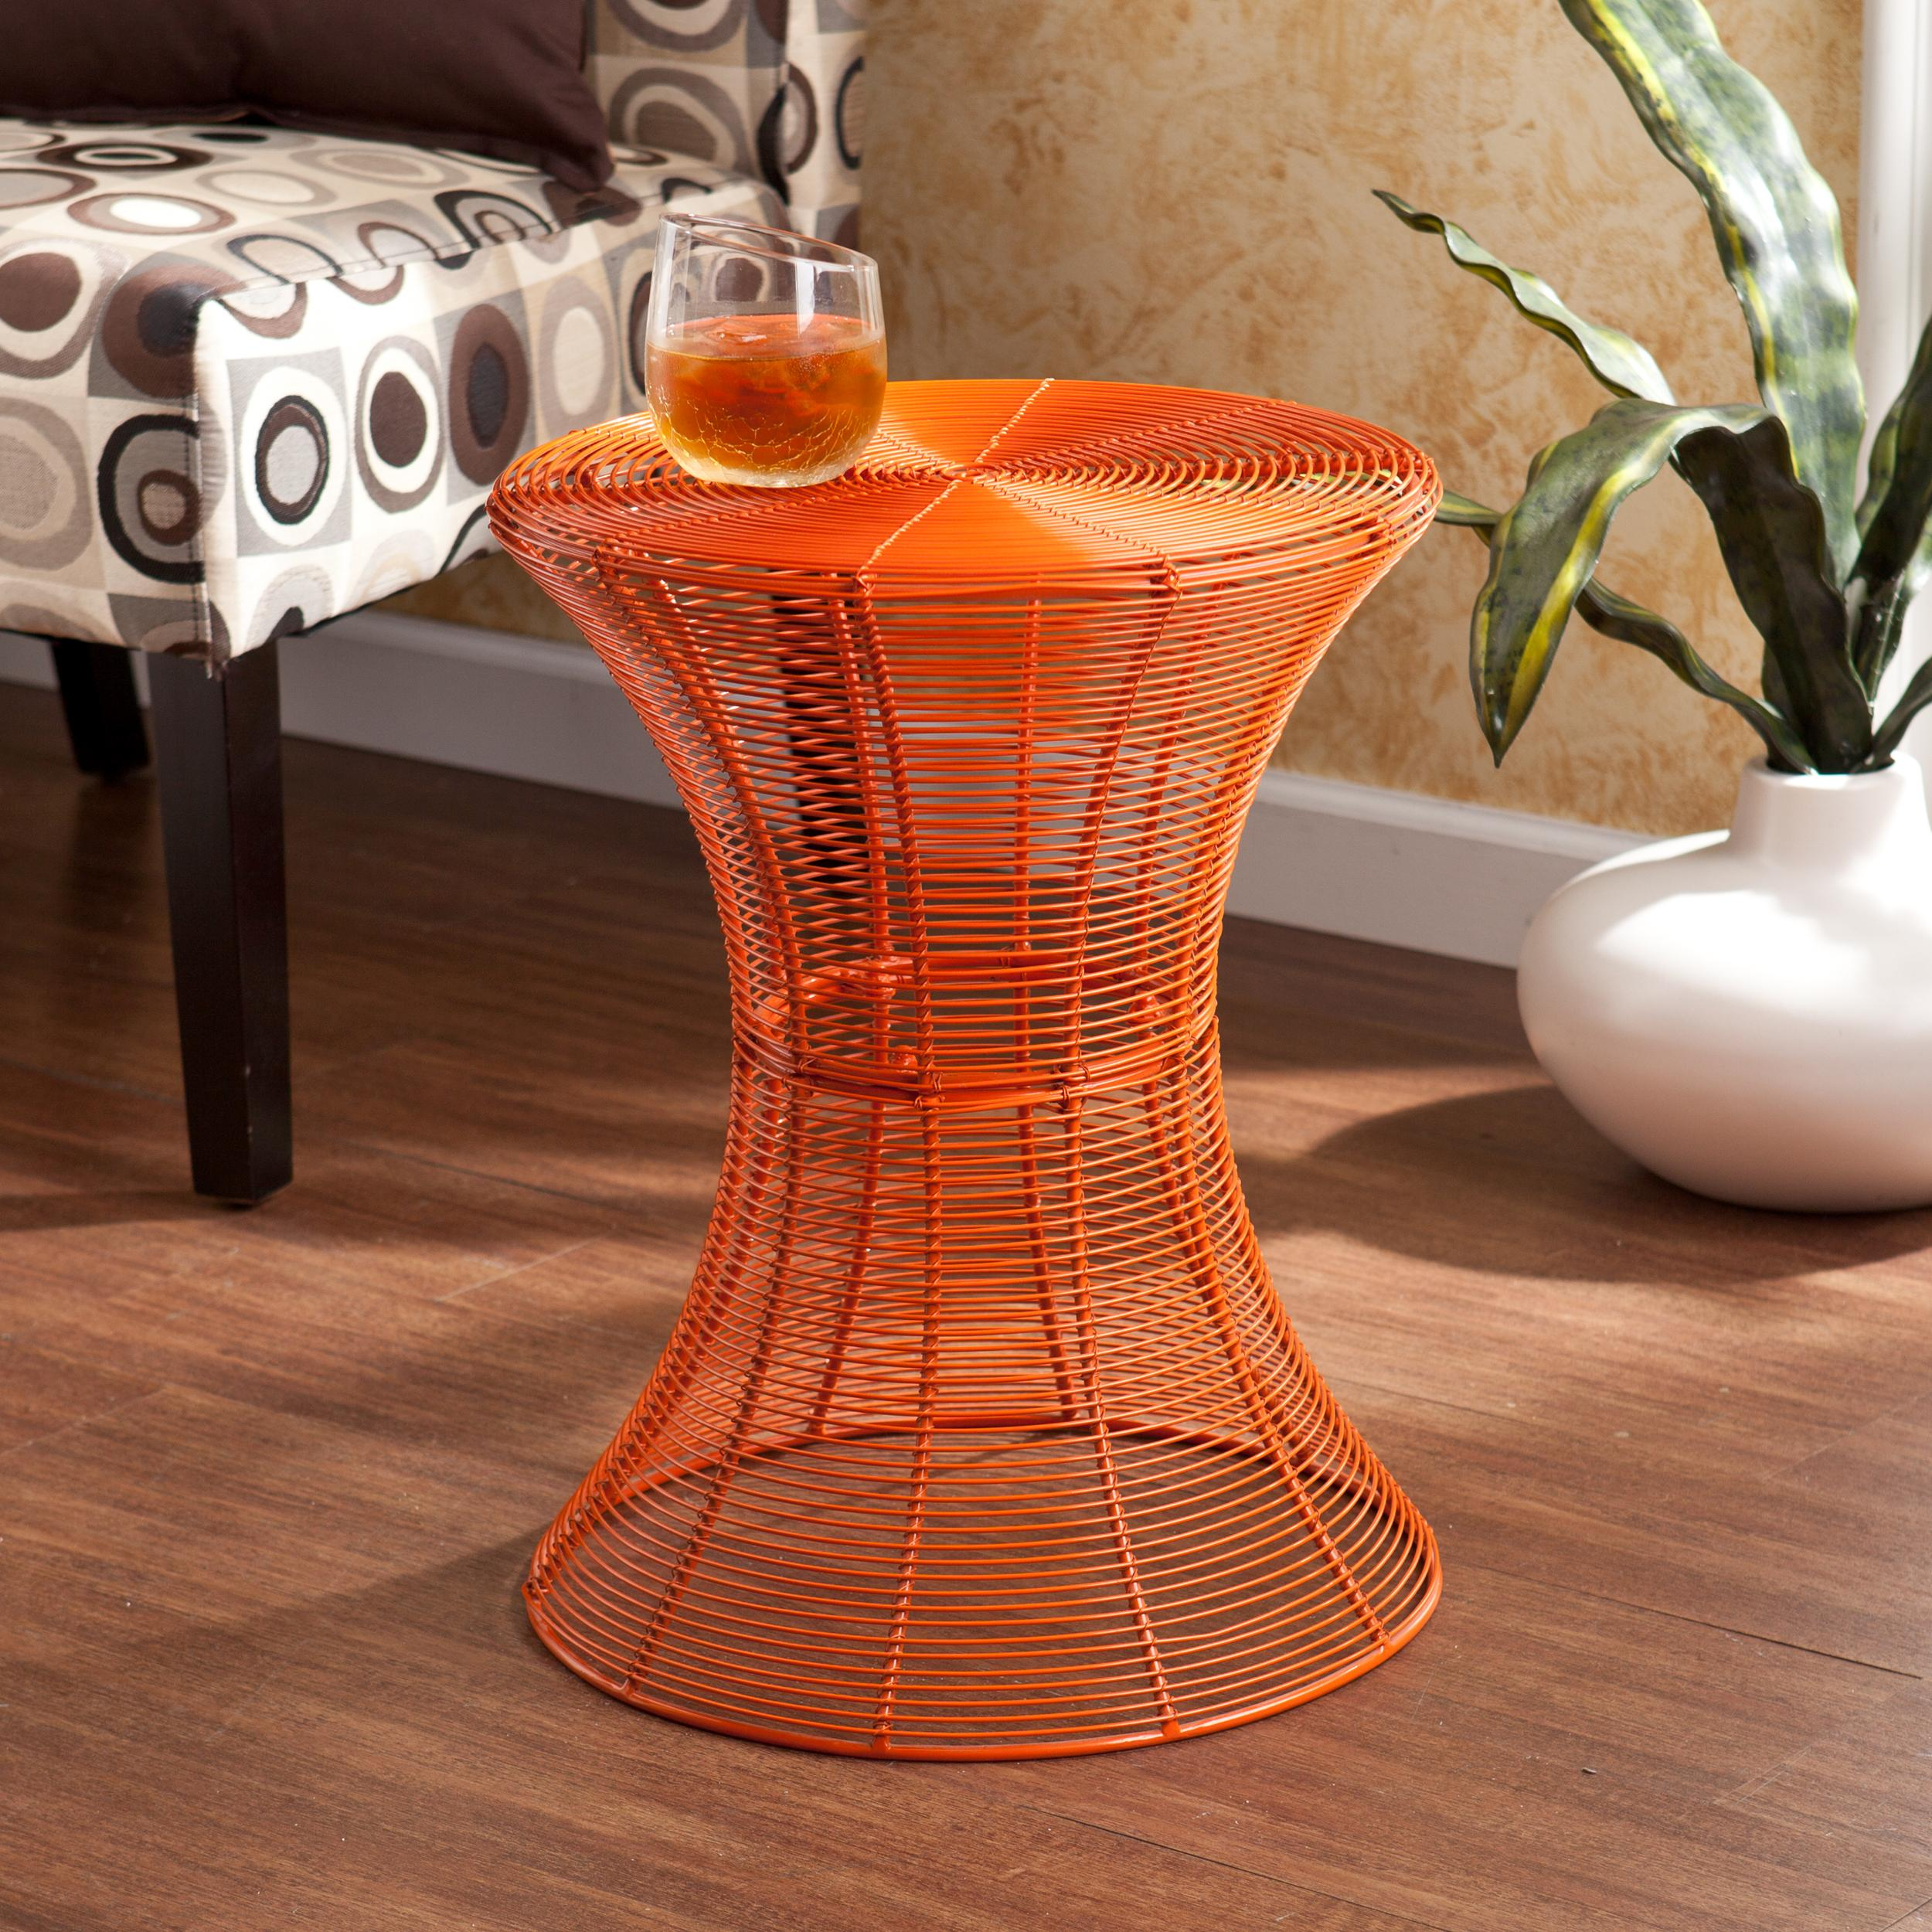 View larger for Orange outdoor side table